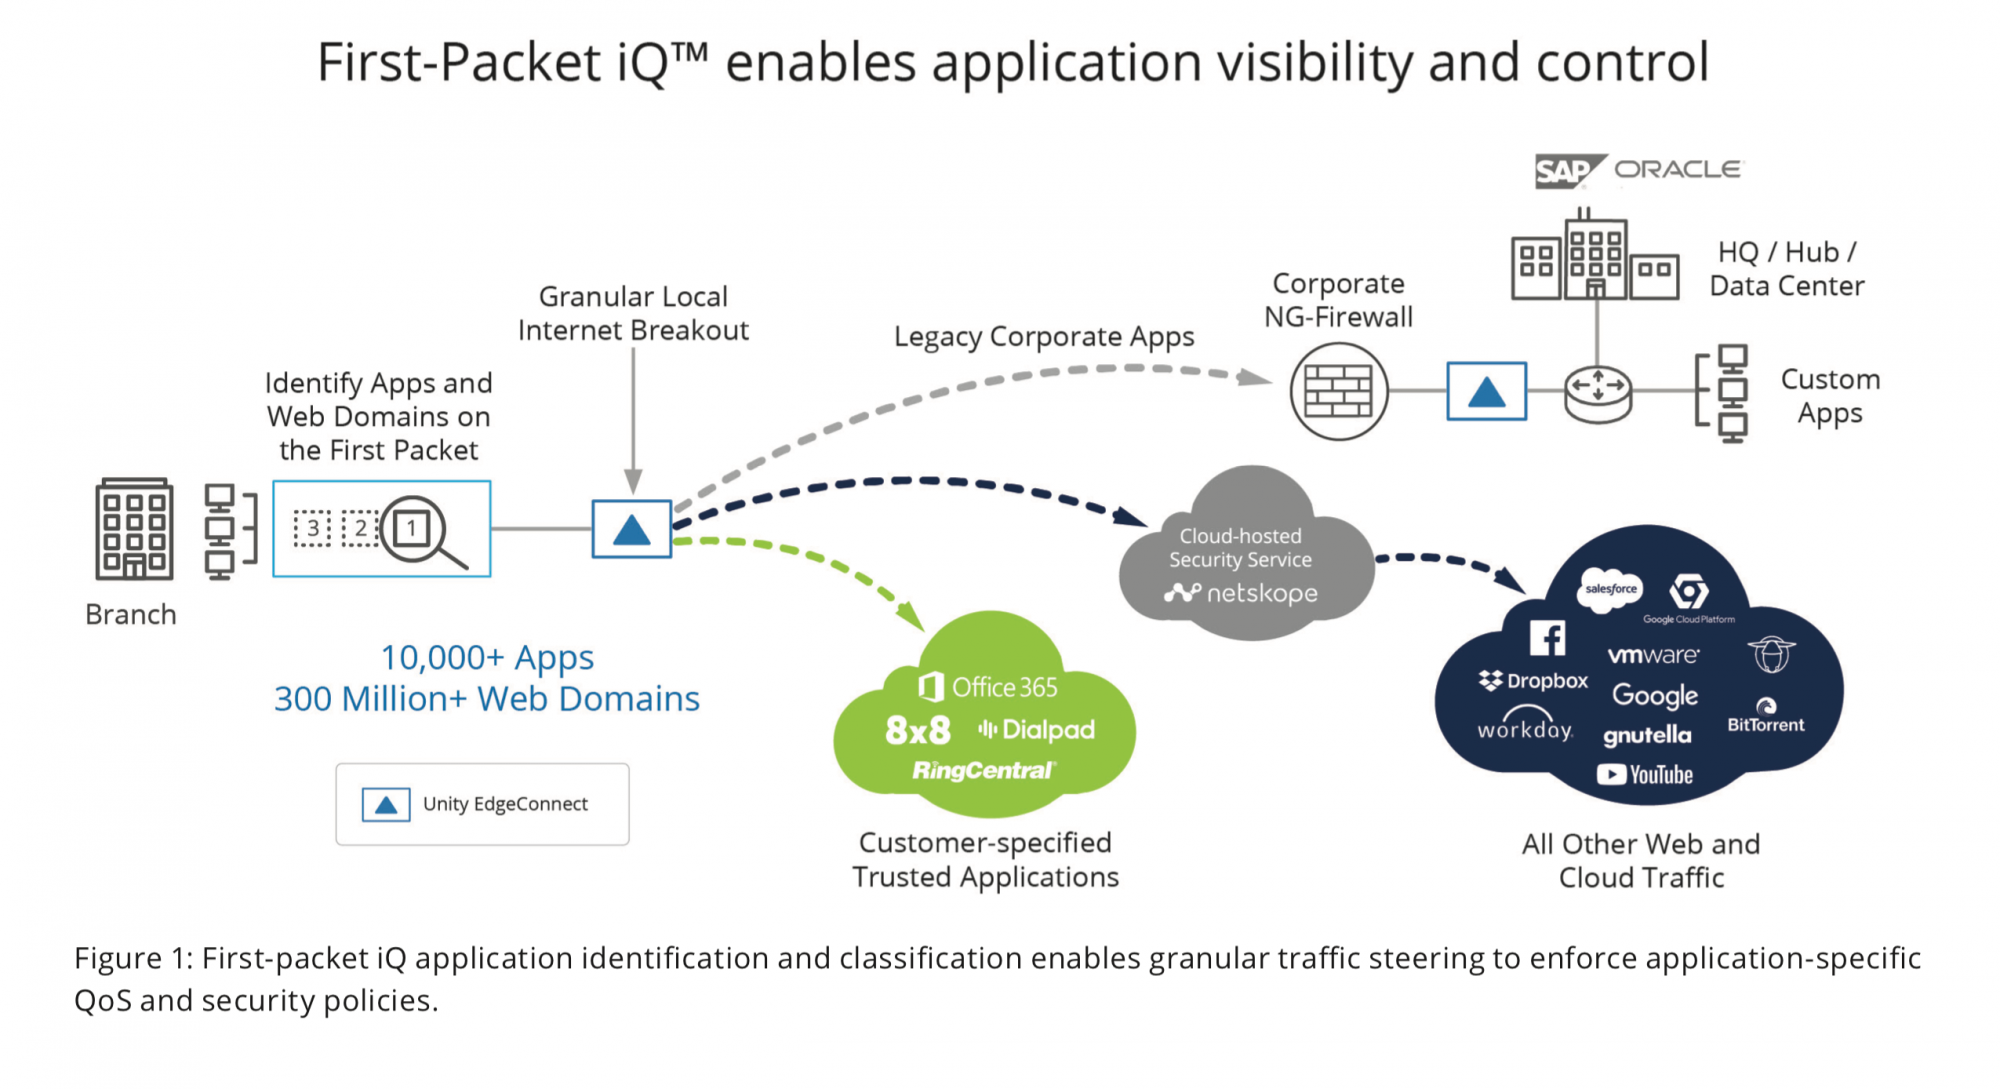 Figure 1: First-packet iQ application identification and classification enables granular traffic steering to enforce application-specific QoS and security policies